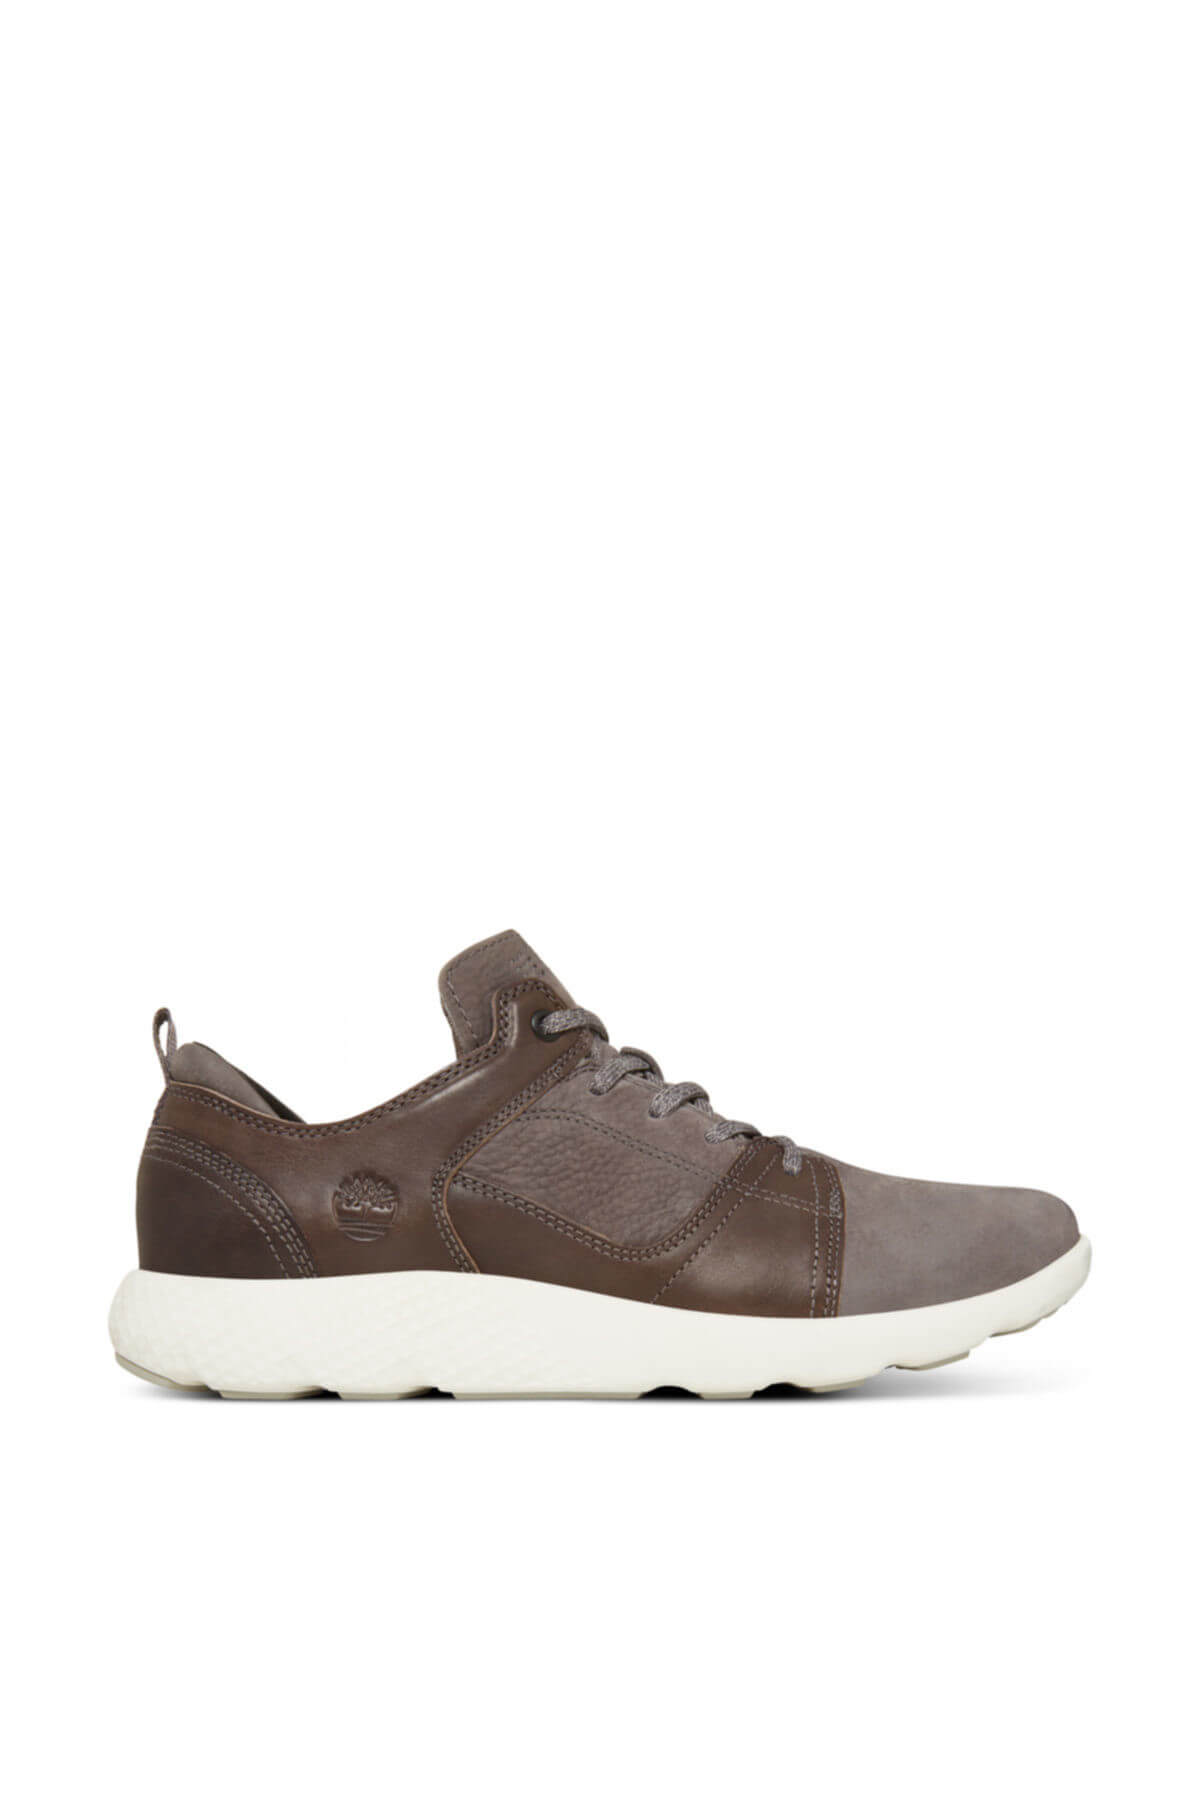 Timberland  Flyroam Leather Oxford  439.2 TL